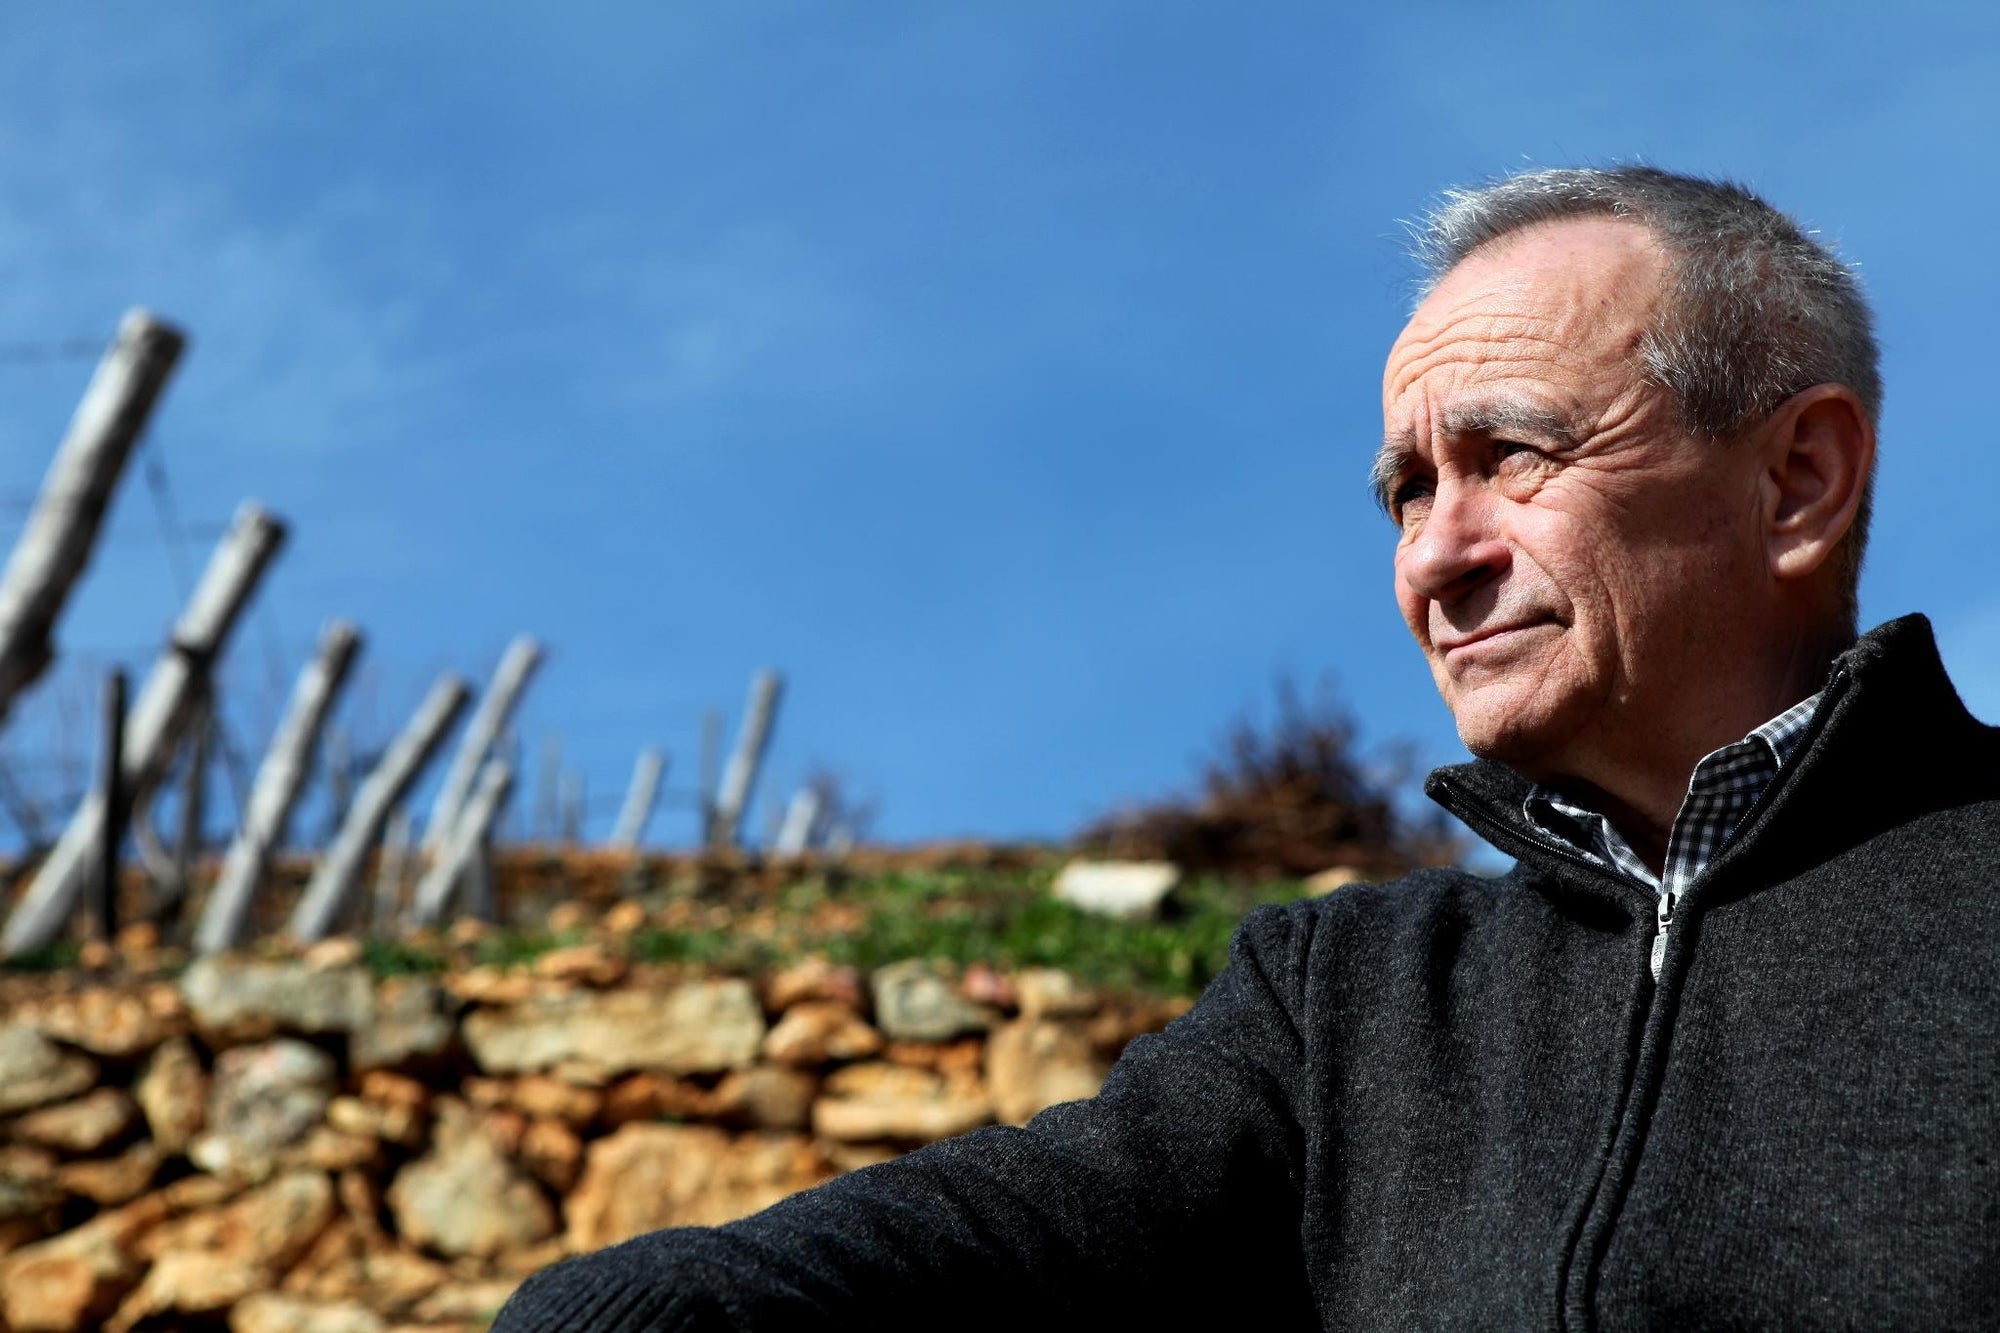 With his own words: introducing the iconic Tokaji winemaker, Istvan Szepsy